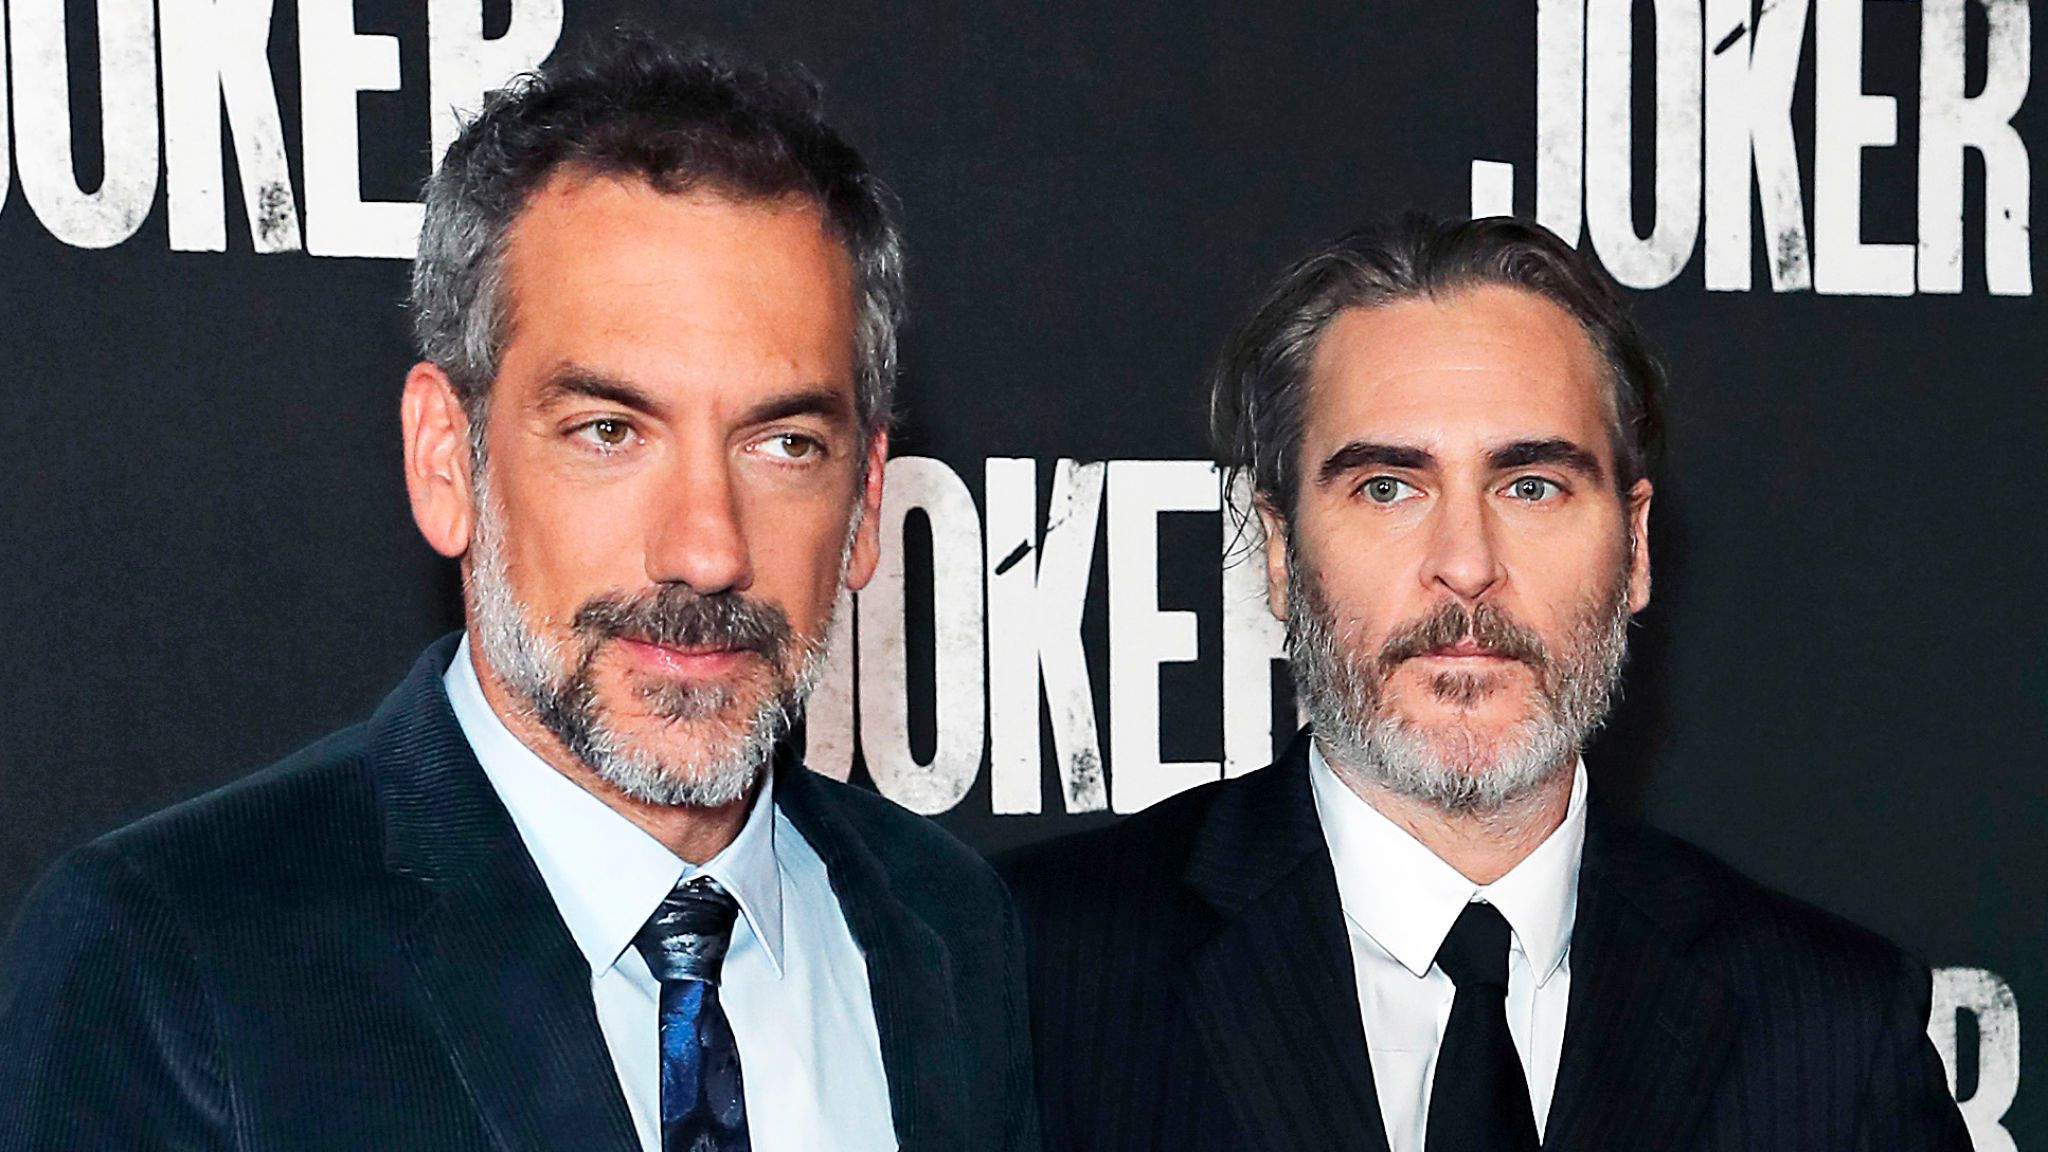 Todd Phillips (left) and Joaquin Phoenix attend a special screening of Joker at Cineworld Leicester Square on September 25, 2019 in London